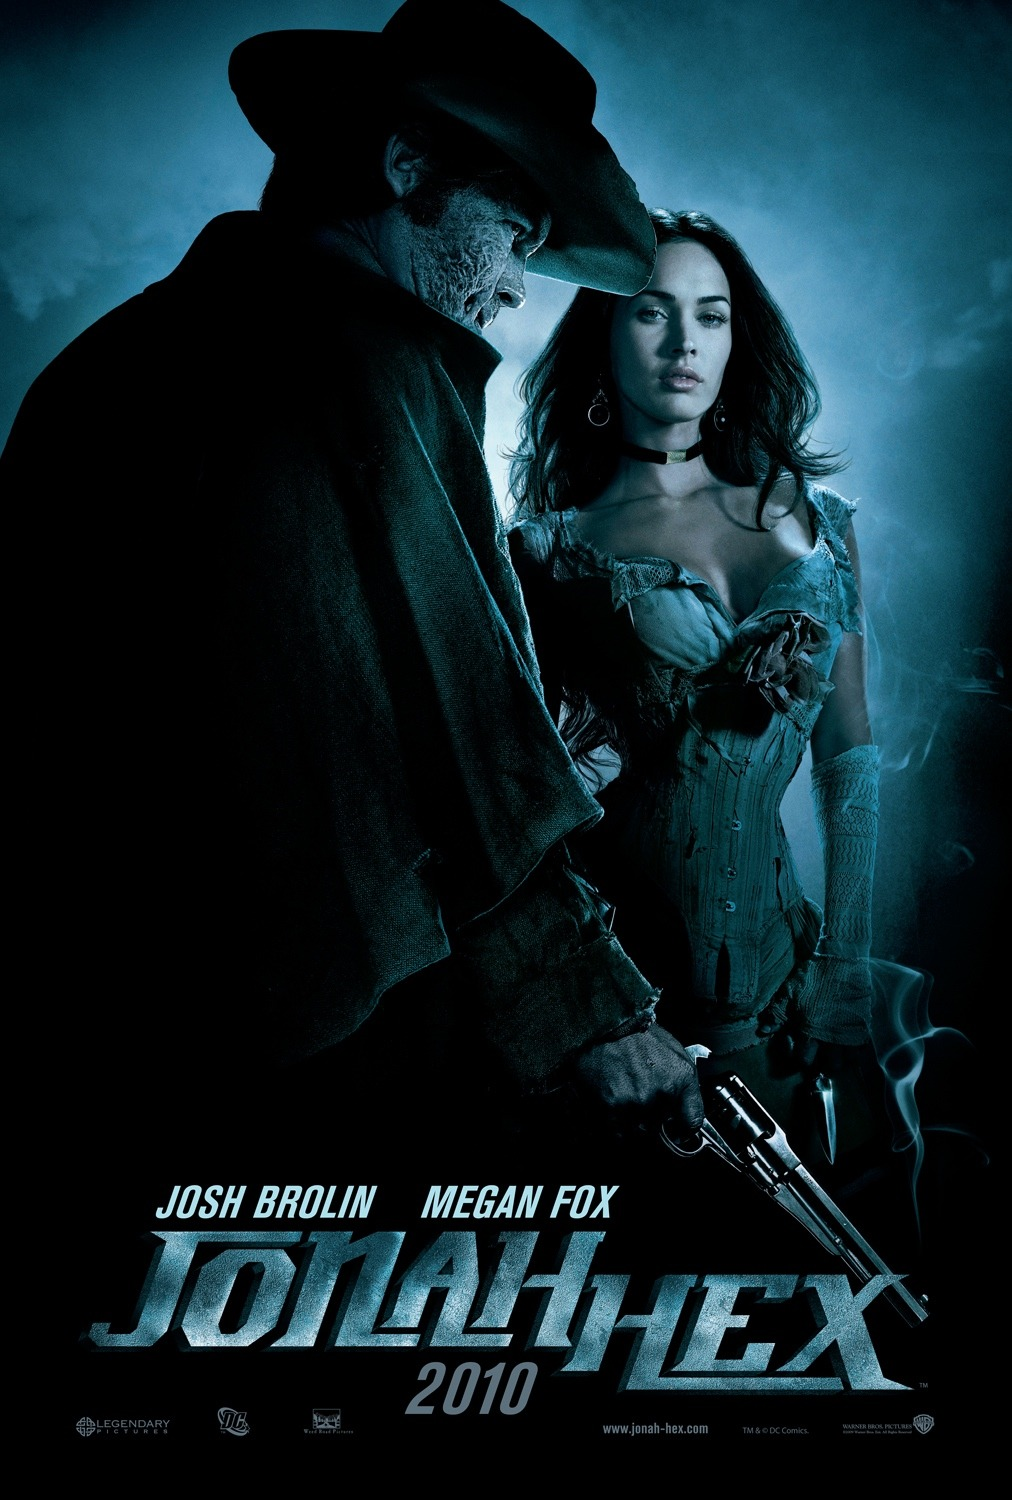 Download solomon kane full movie in hindi dubbed Free